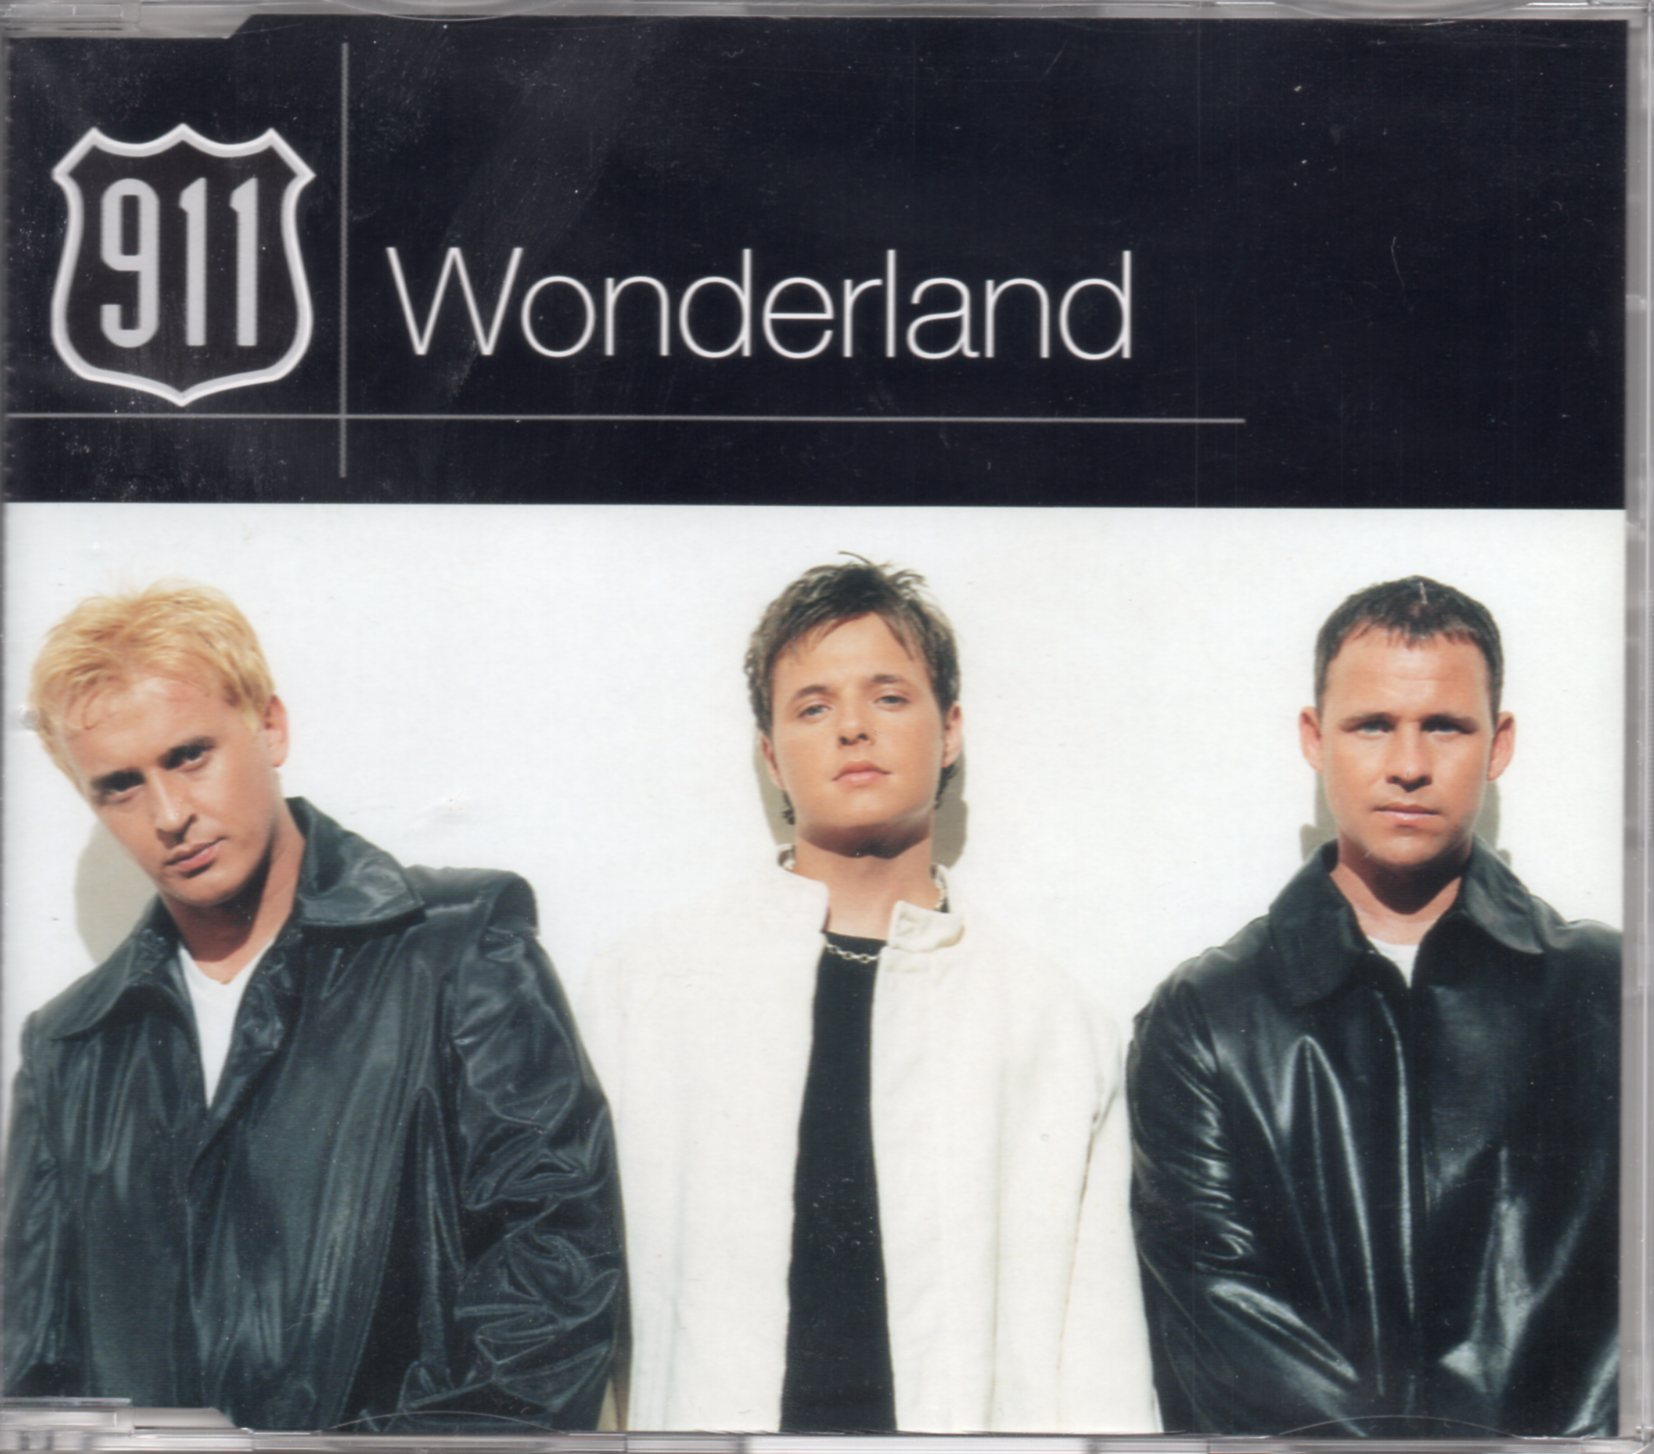 911 - Wonderland 3-track Jewel Case - CD Maxi